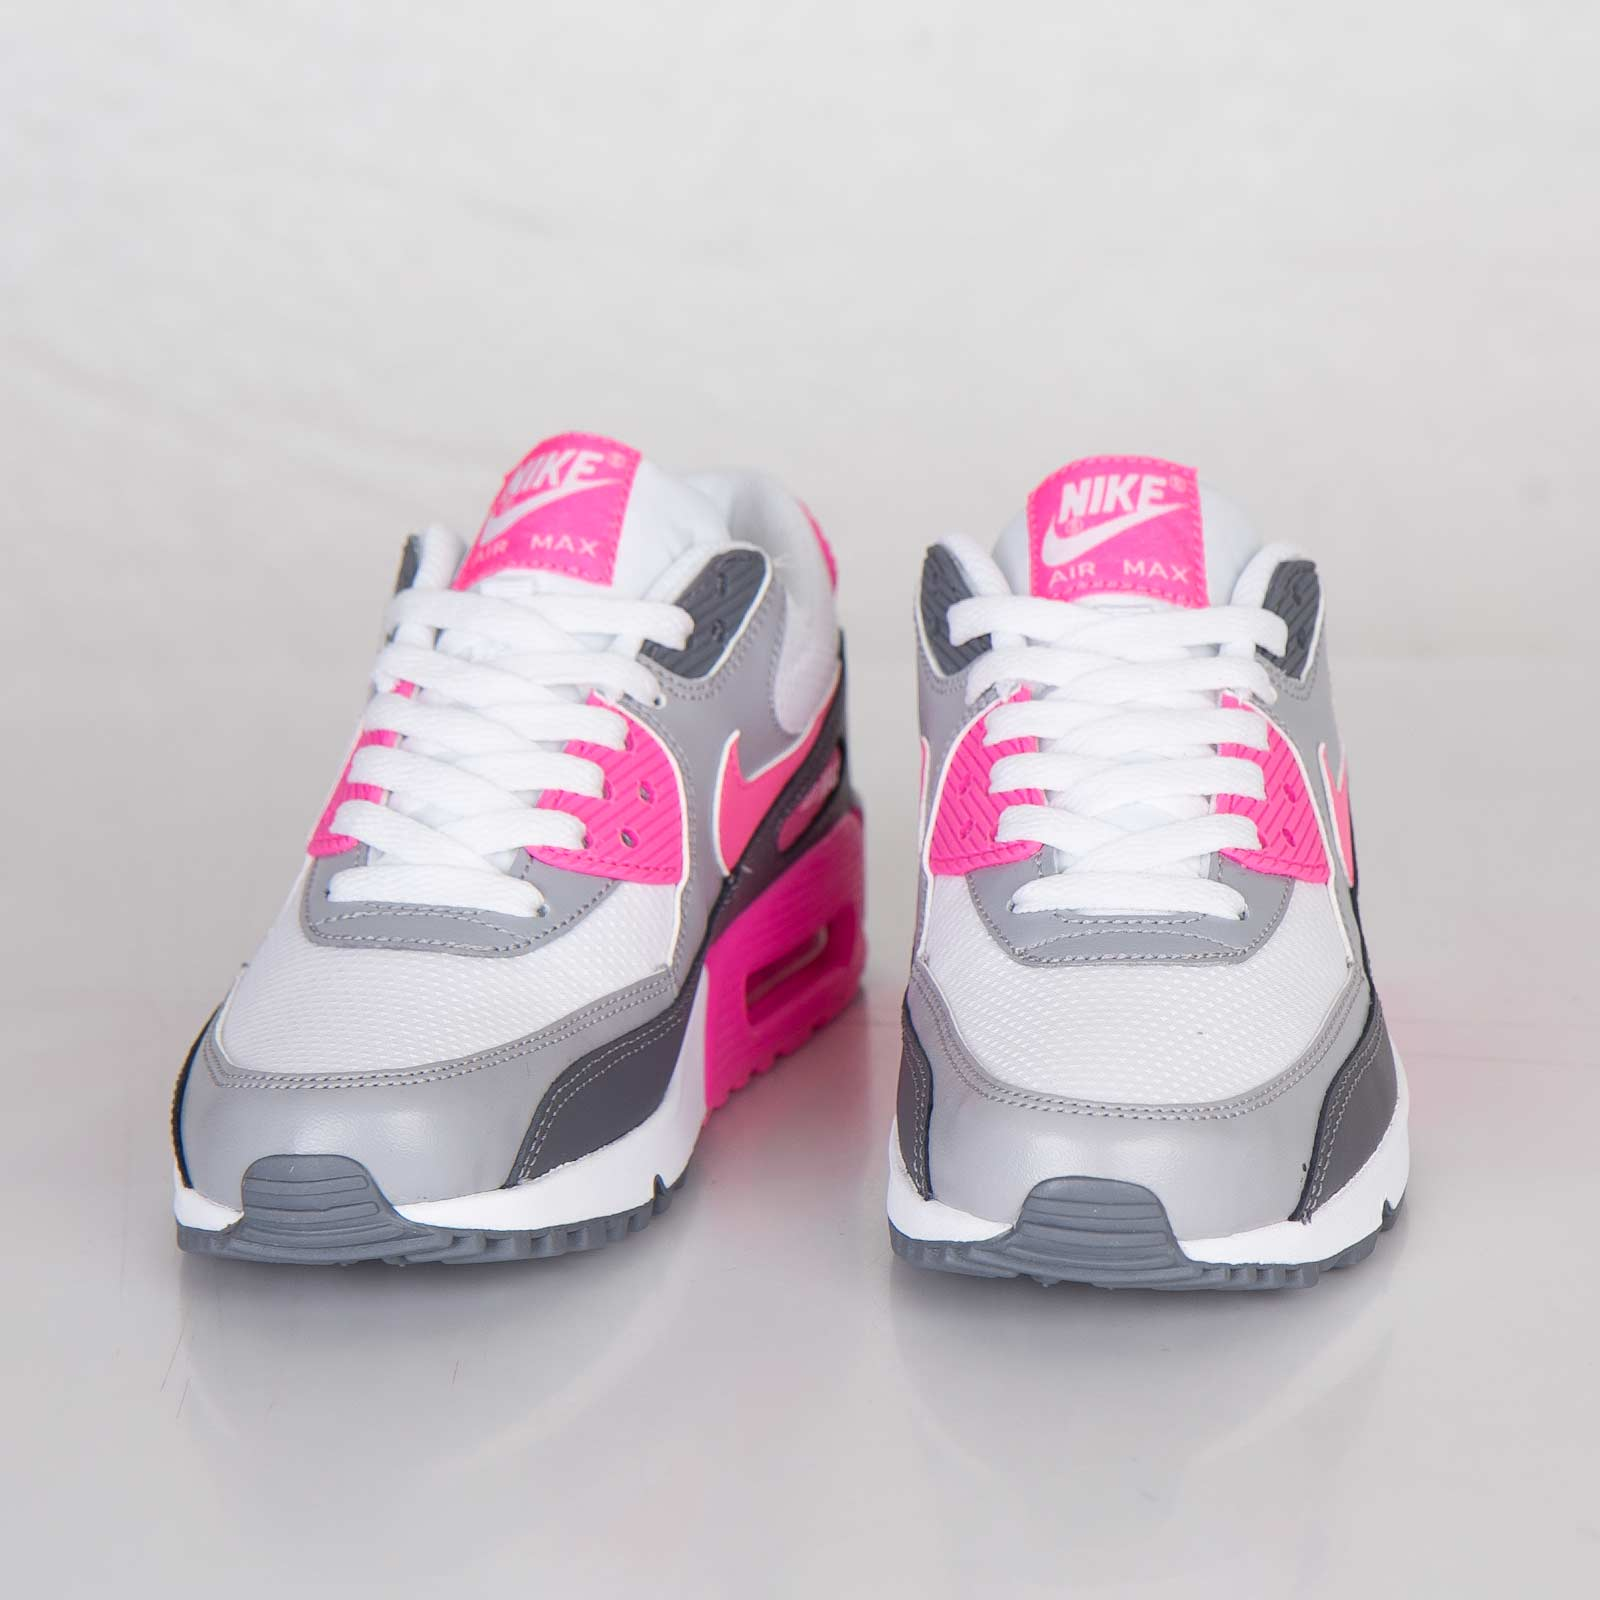 premium selection dc86b 0a6a8 Nike Wmns Air Max 90 Essential - 616730-102 - Sneakersnstuff   sneakers    streetwear online since 1999